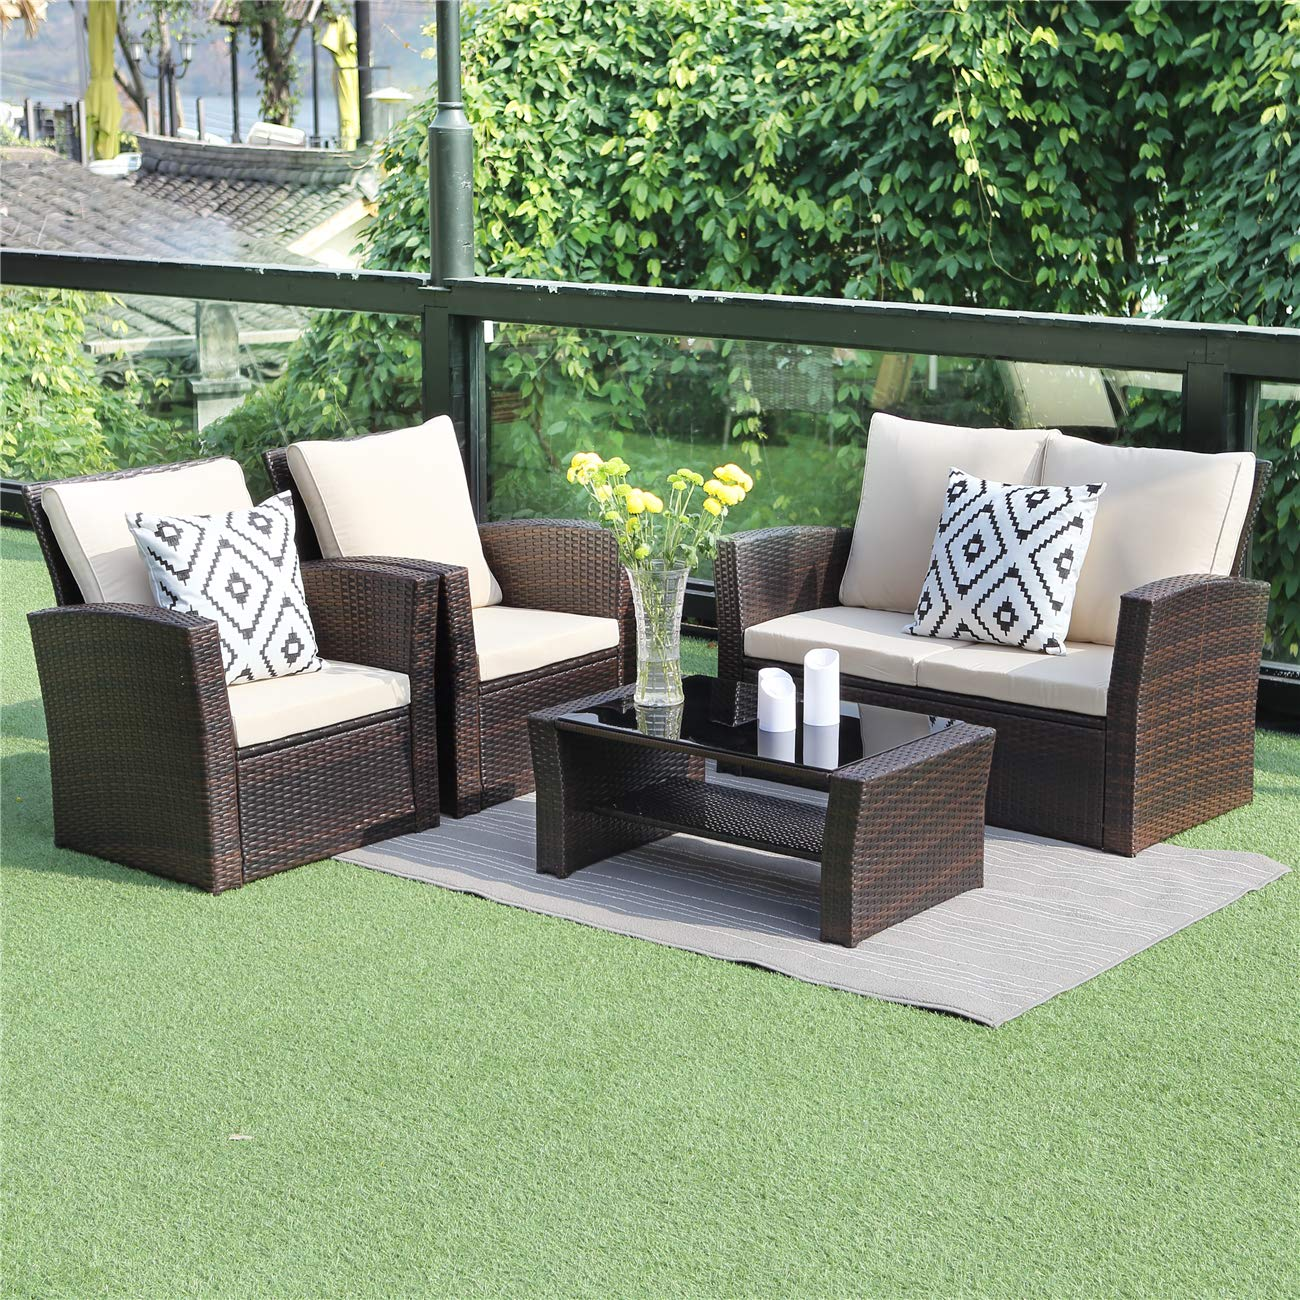 Wisteria Lane 5 Piece Outdoor Patio Furniture Sets, Wicker ... on 5 Piece Sectional Patio Set id=71612